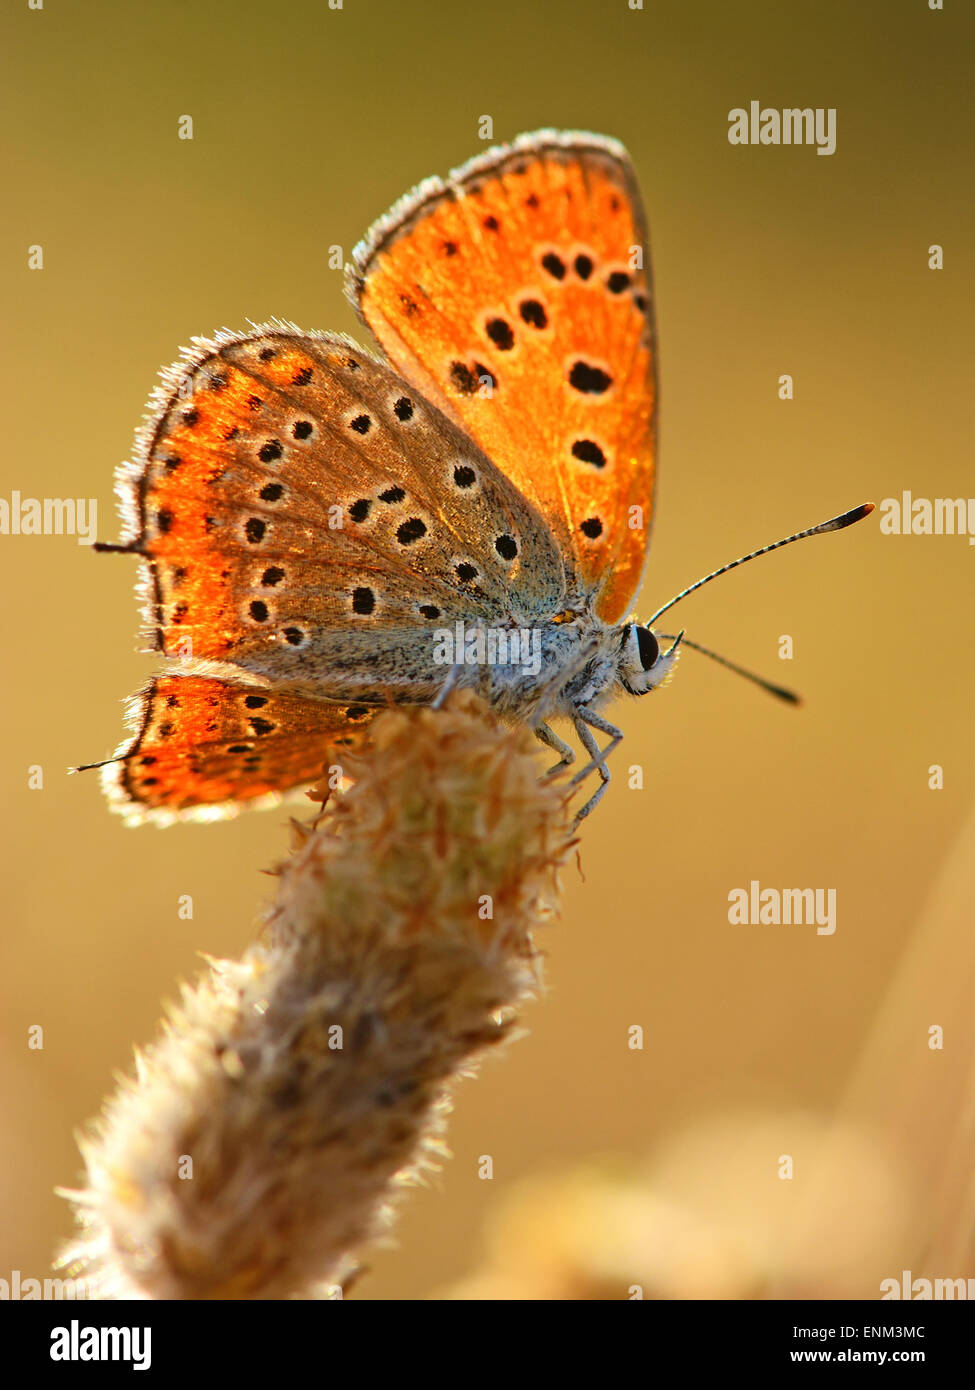 Fiery moindre,Lycaena Thersamon Cuivre Photo Stock